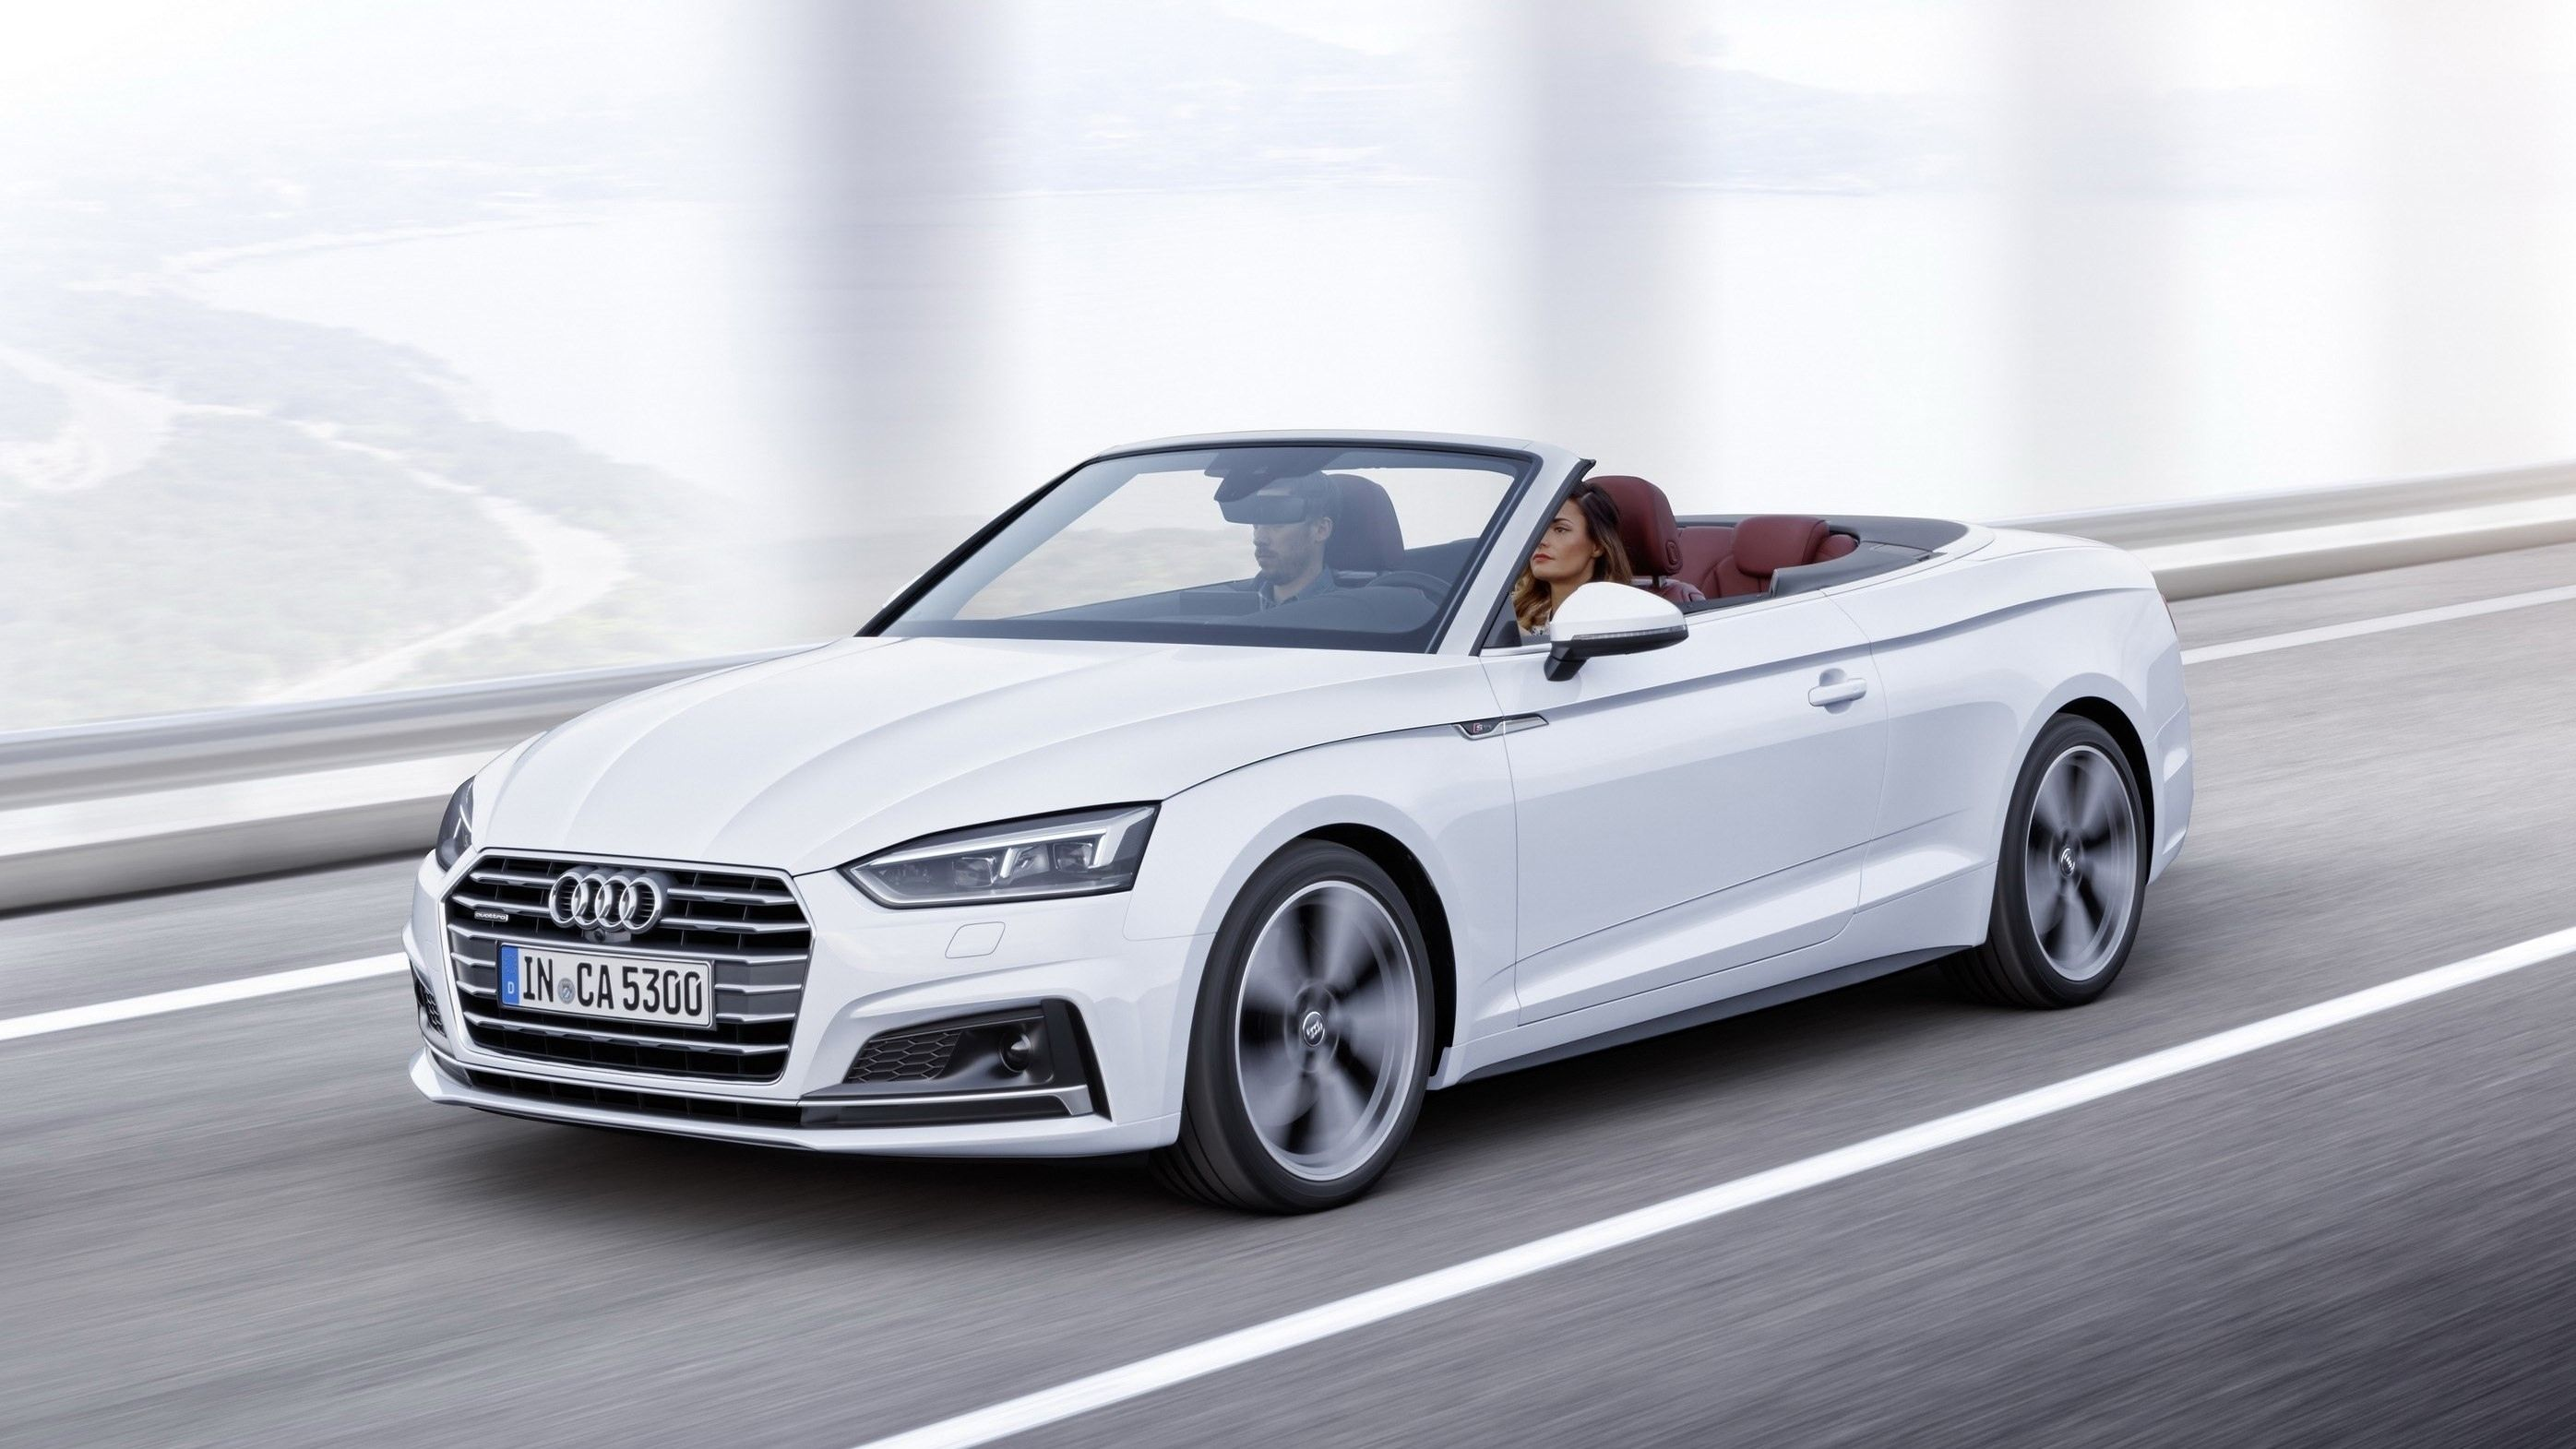 2019 Audi Rs5 Cabriolet Release Specs And Review Car Review 2018 Audi A5 A5 Cabriolet Audi S5